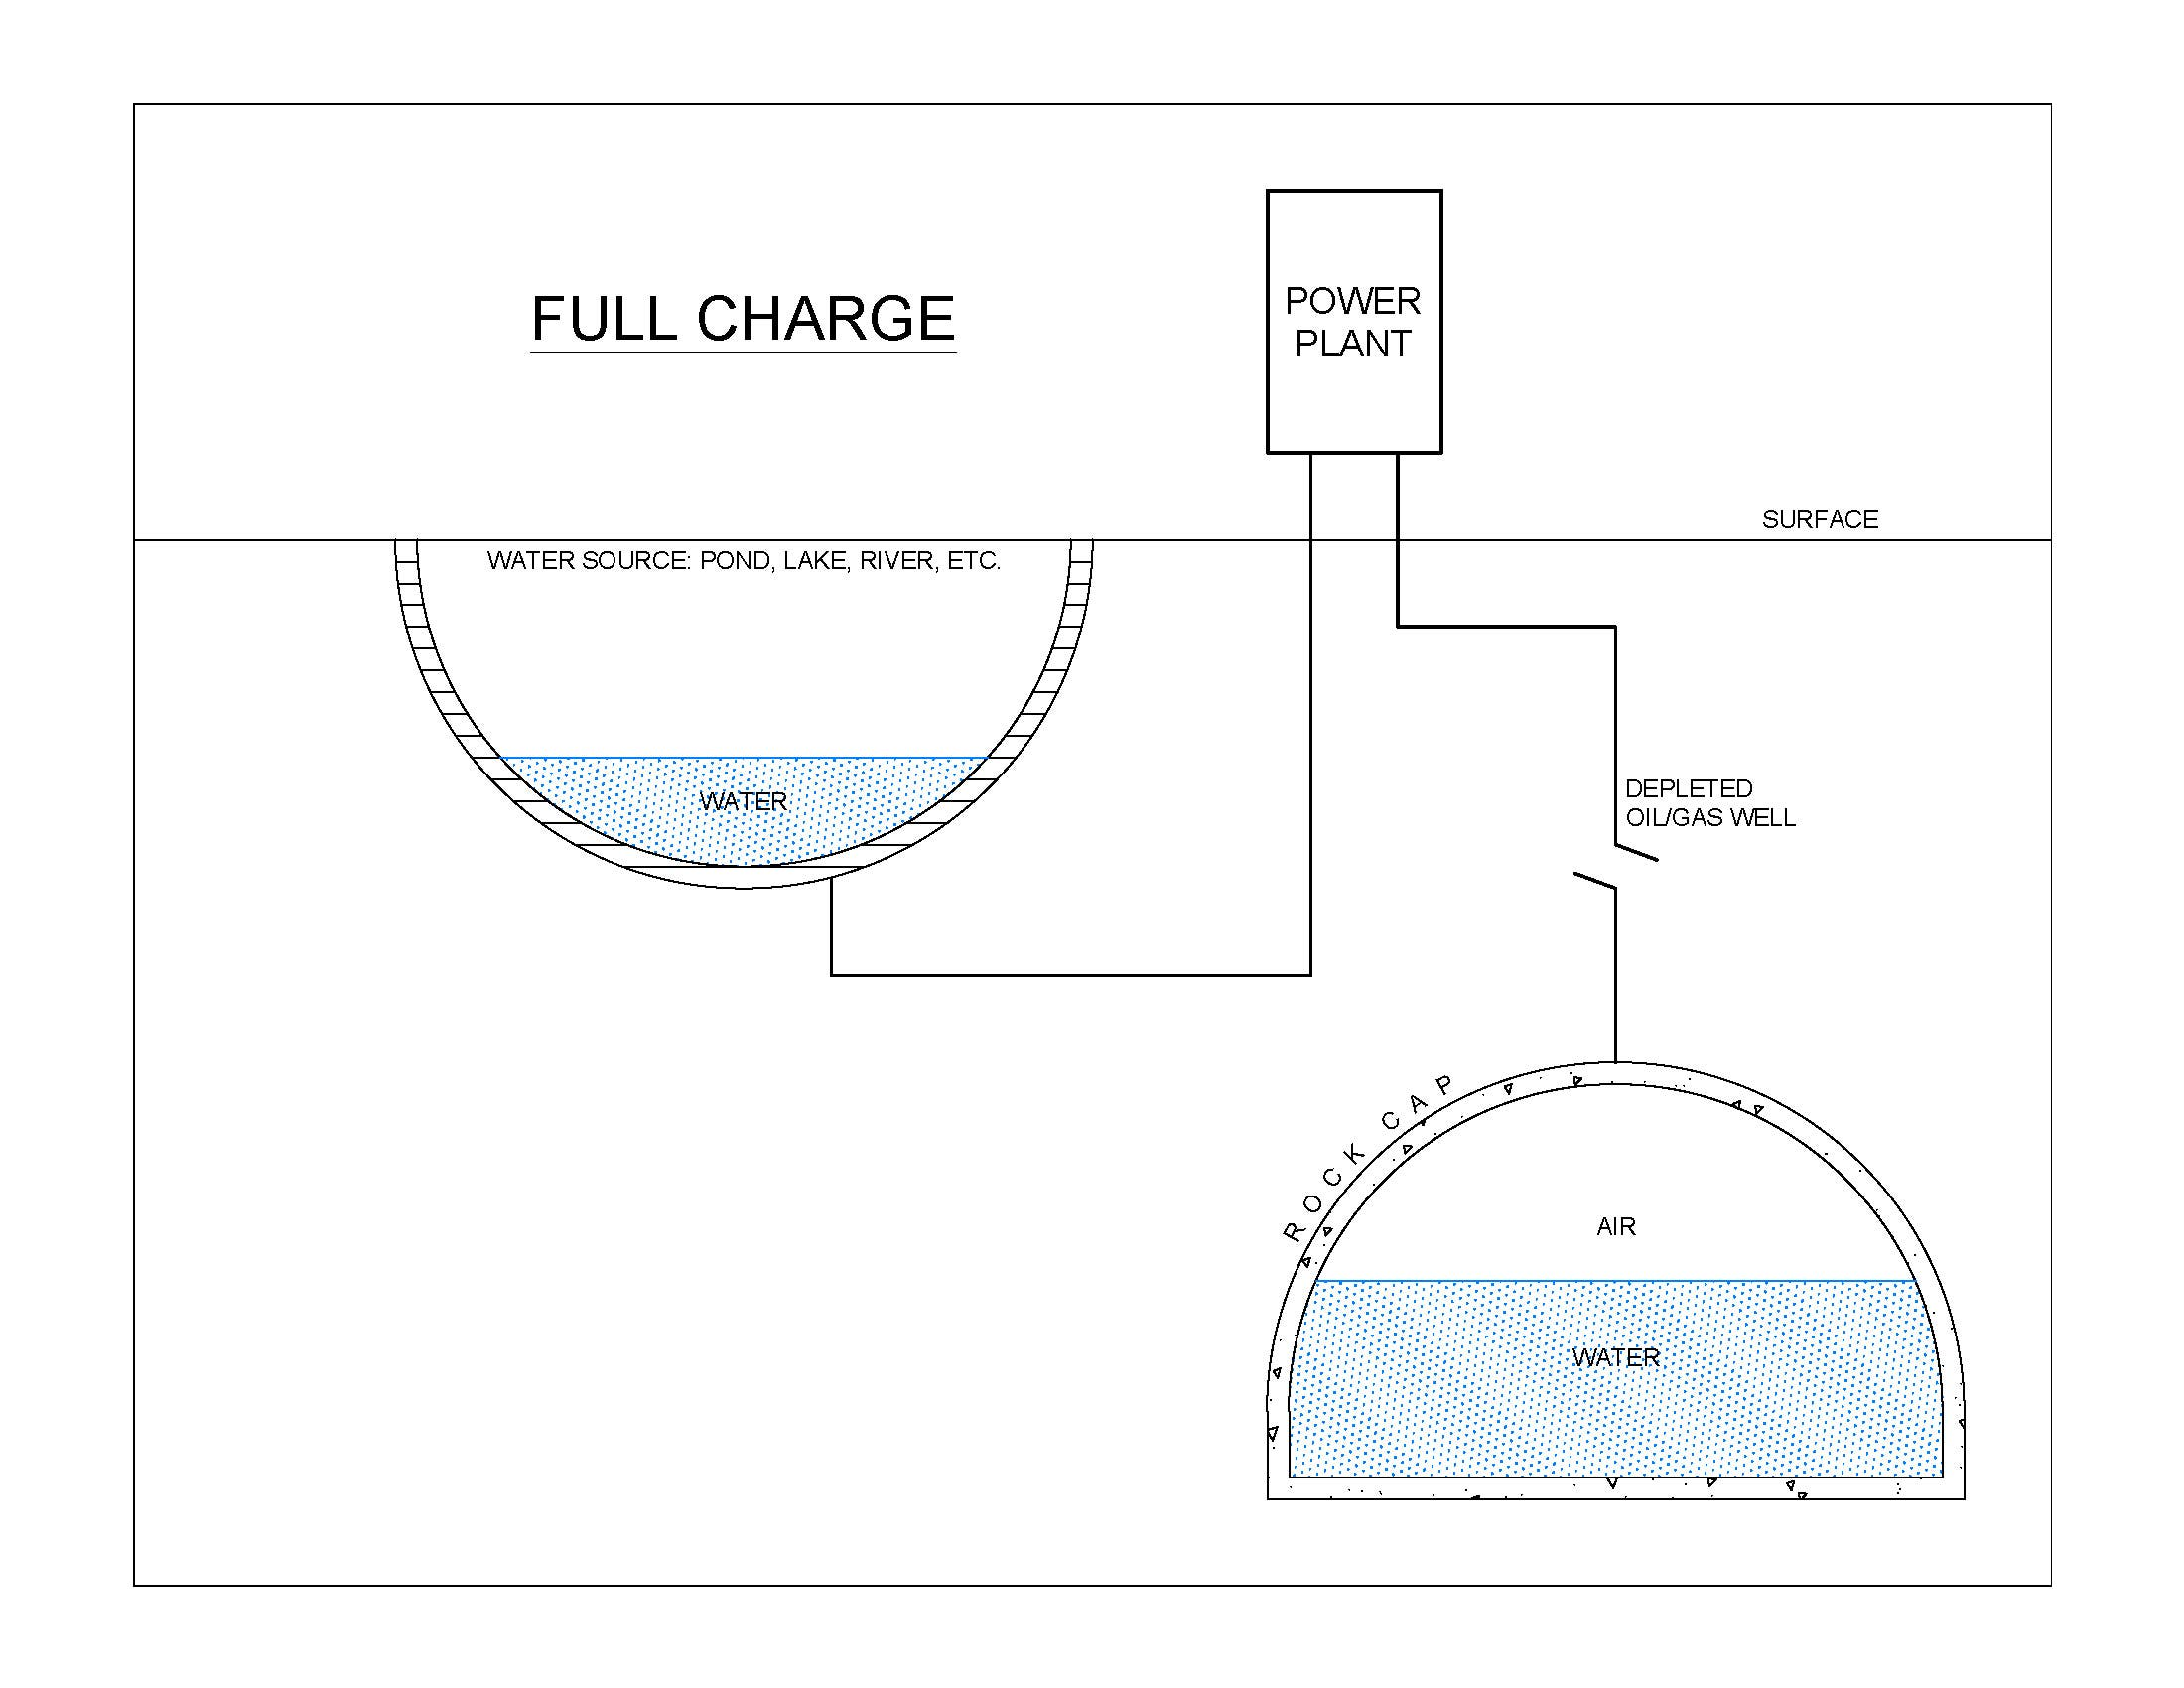 New, Cheap Electric Energy Storage System (Like Pumped Hydro, But Subterranean!)